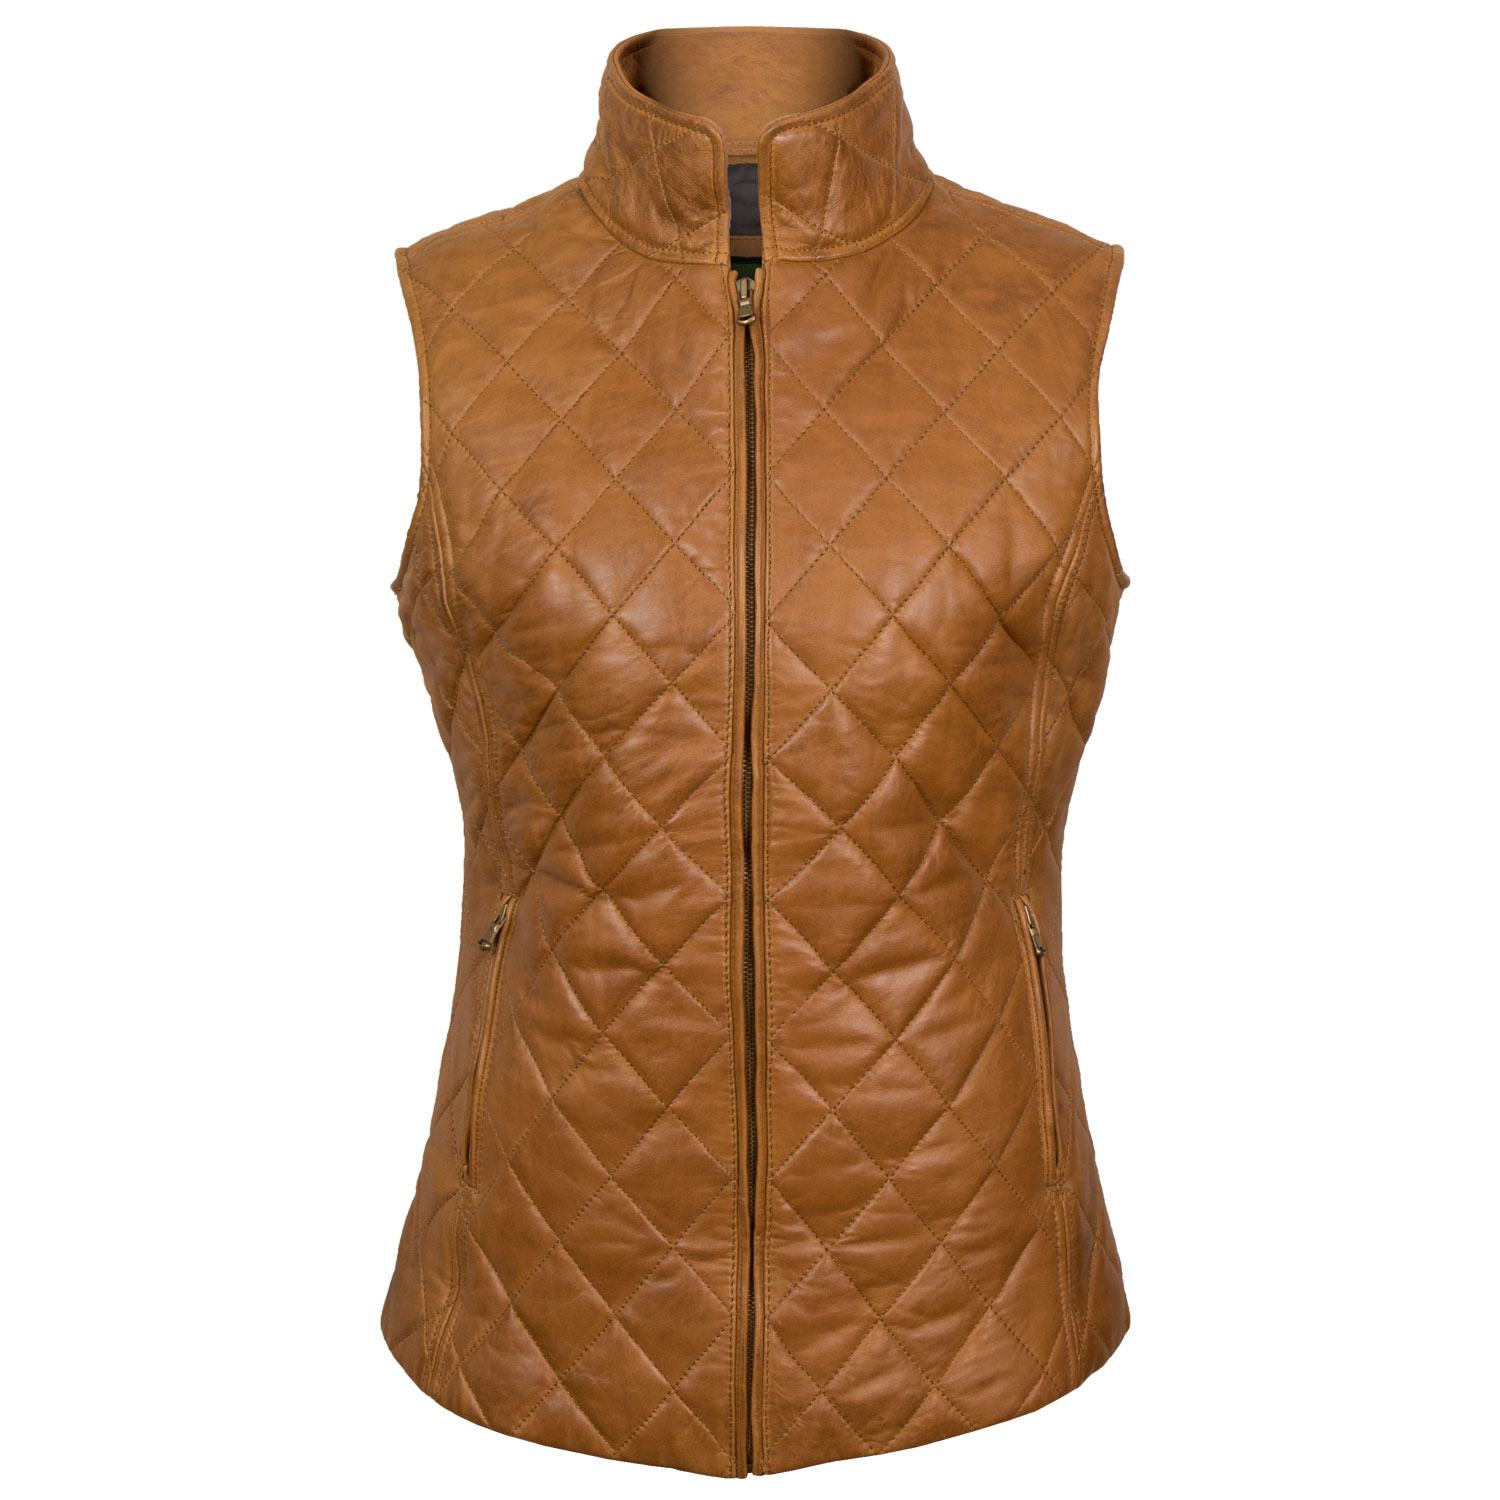 Alexis: Women's Tan Quilted Leather Gilet by Hidepark